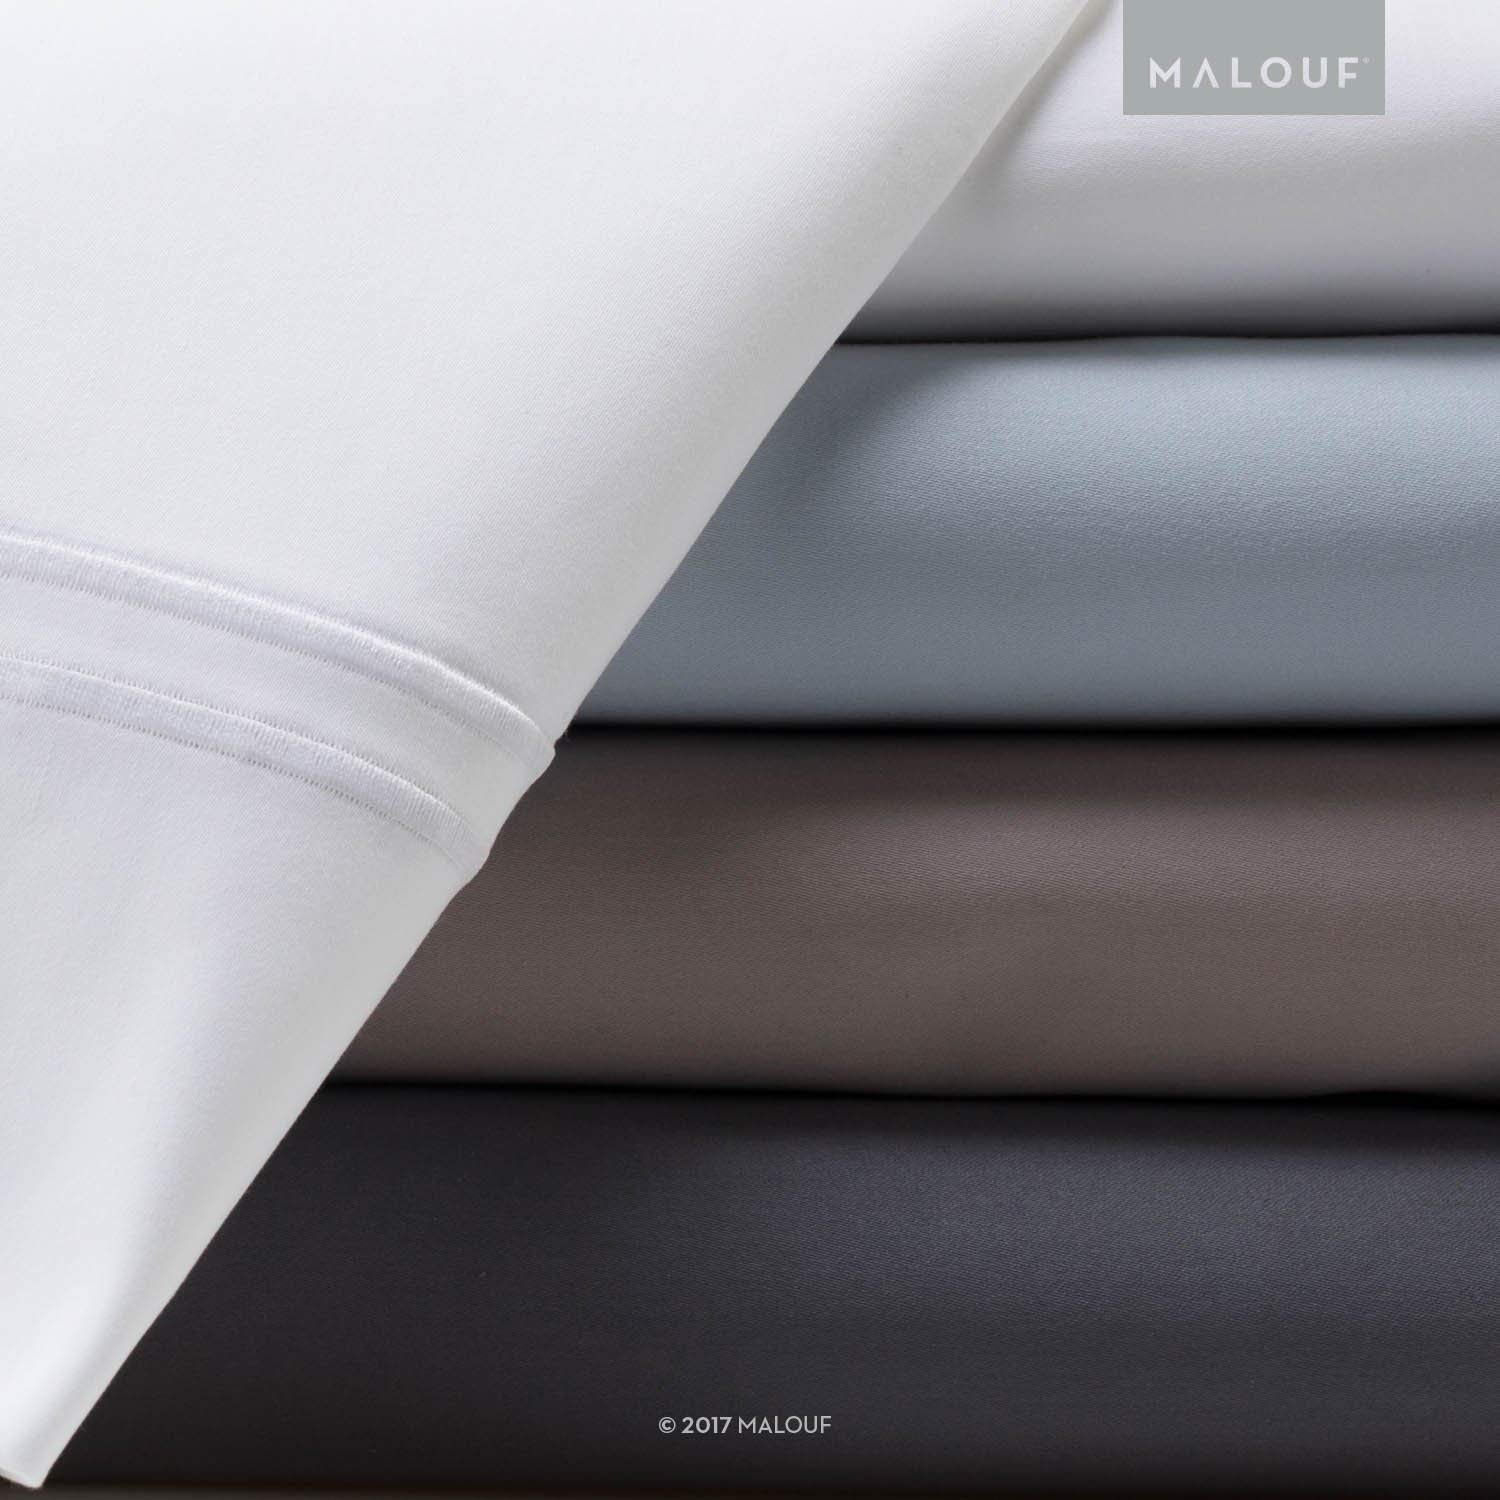 Malouf's Supima Cotton Sheet Set - What Is Supima Cotton